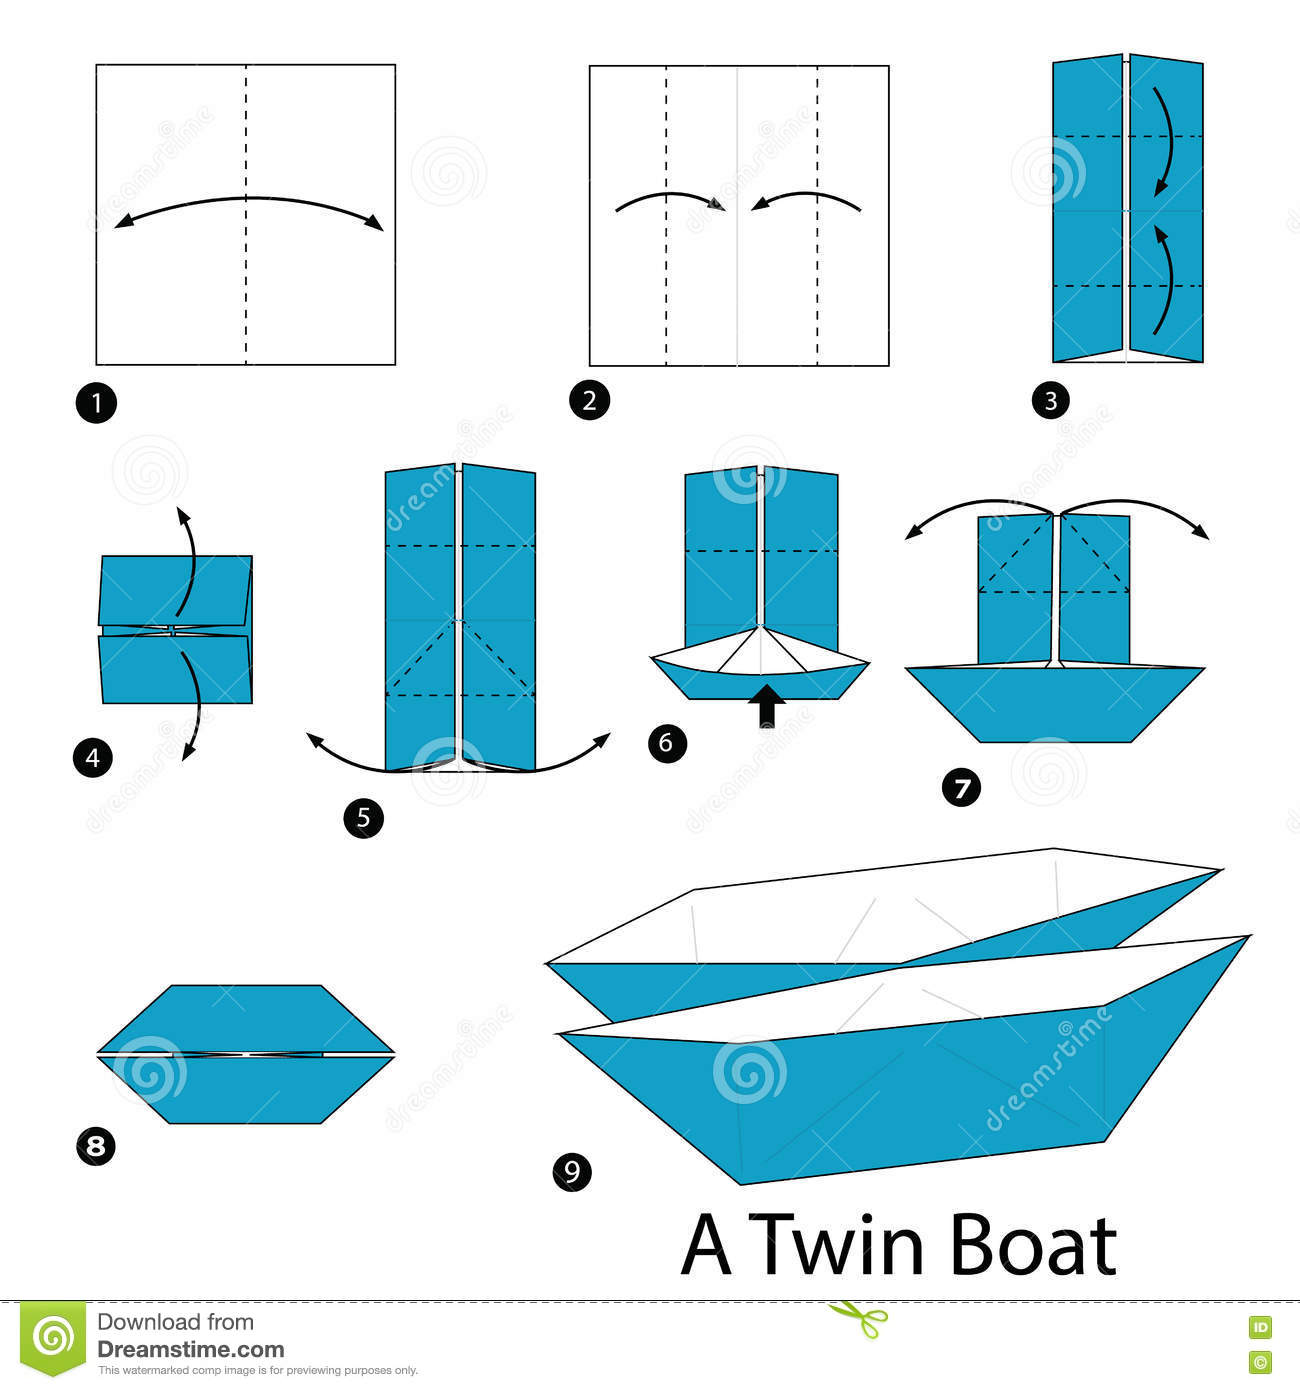 step by step instructions how to make origami a twin boat